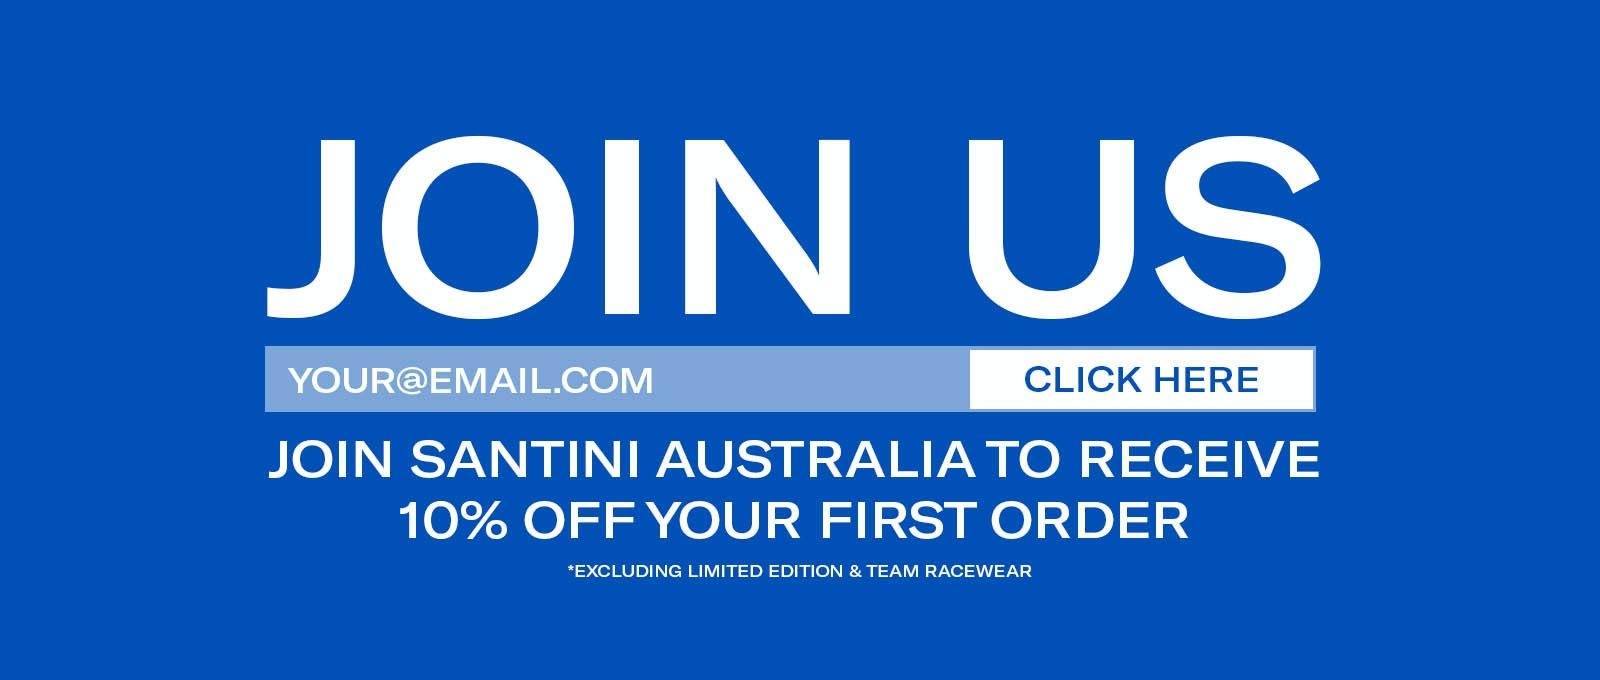 Join Santini Australia and receive 10% off your first order